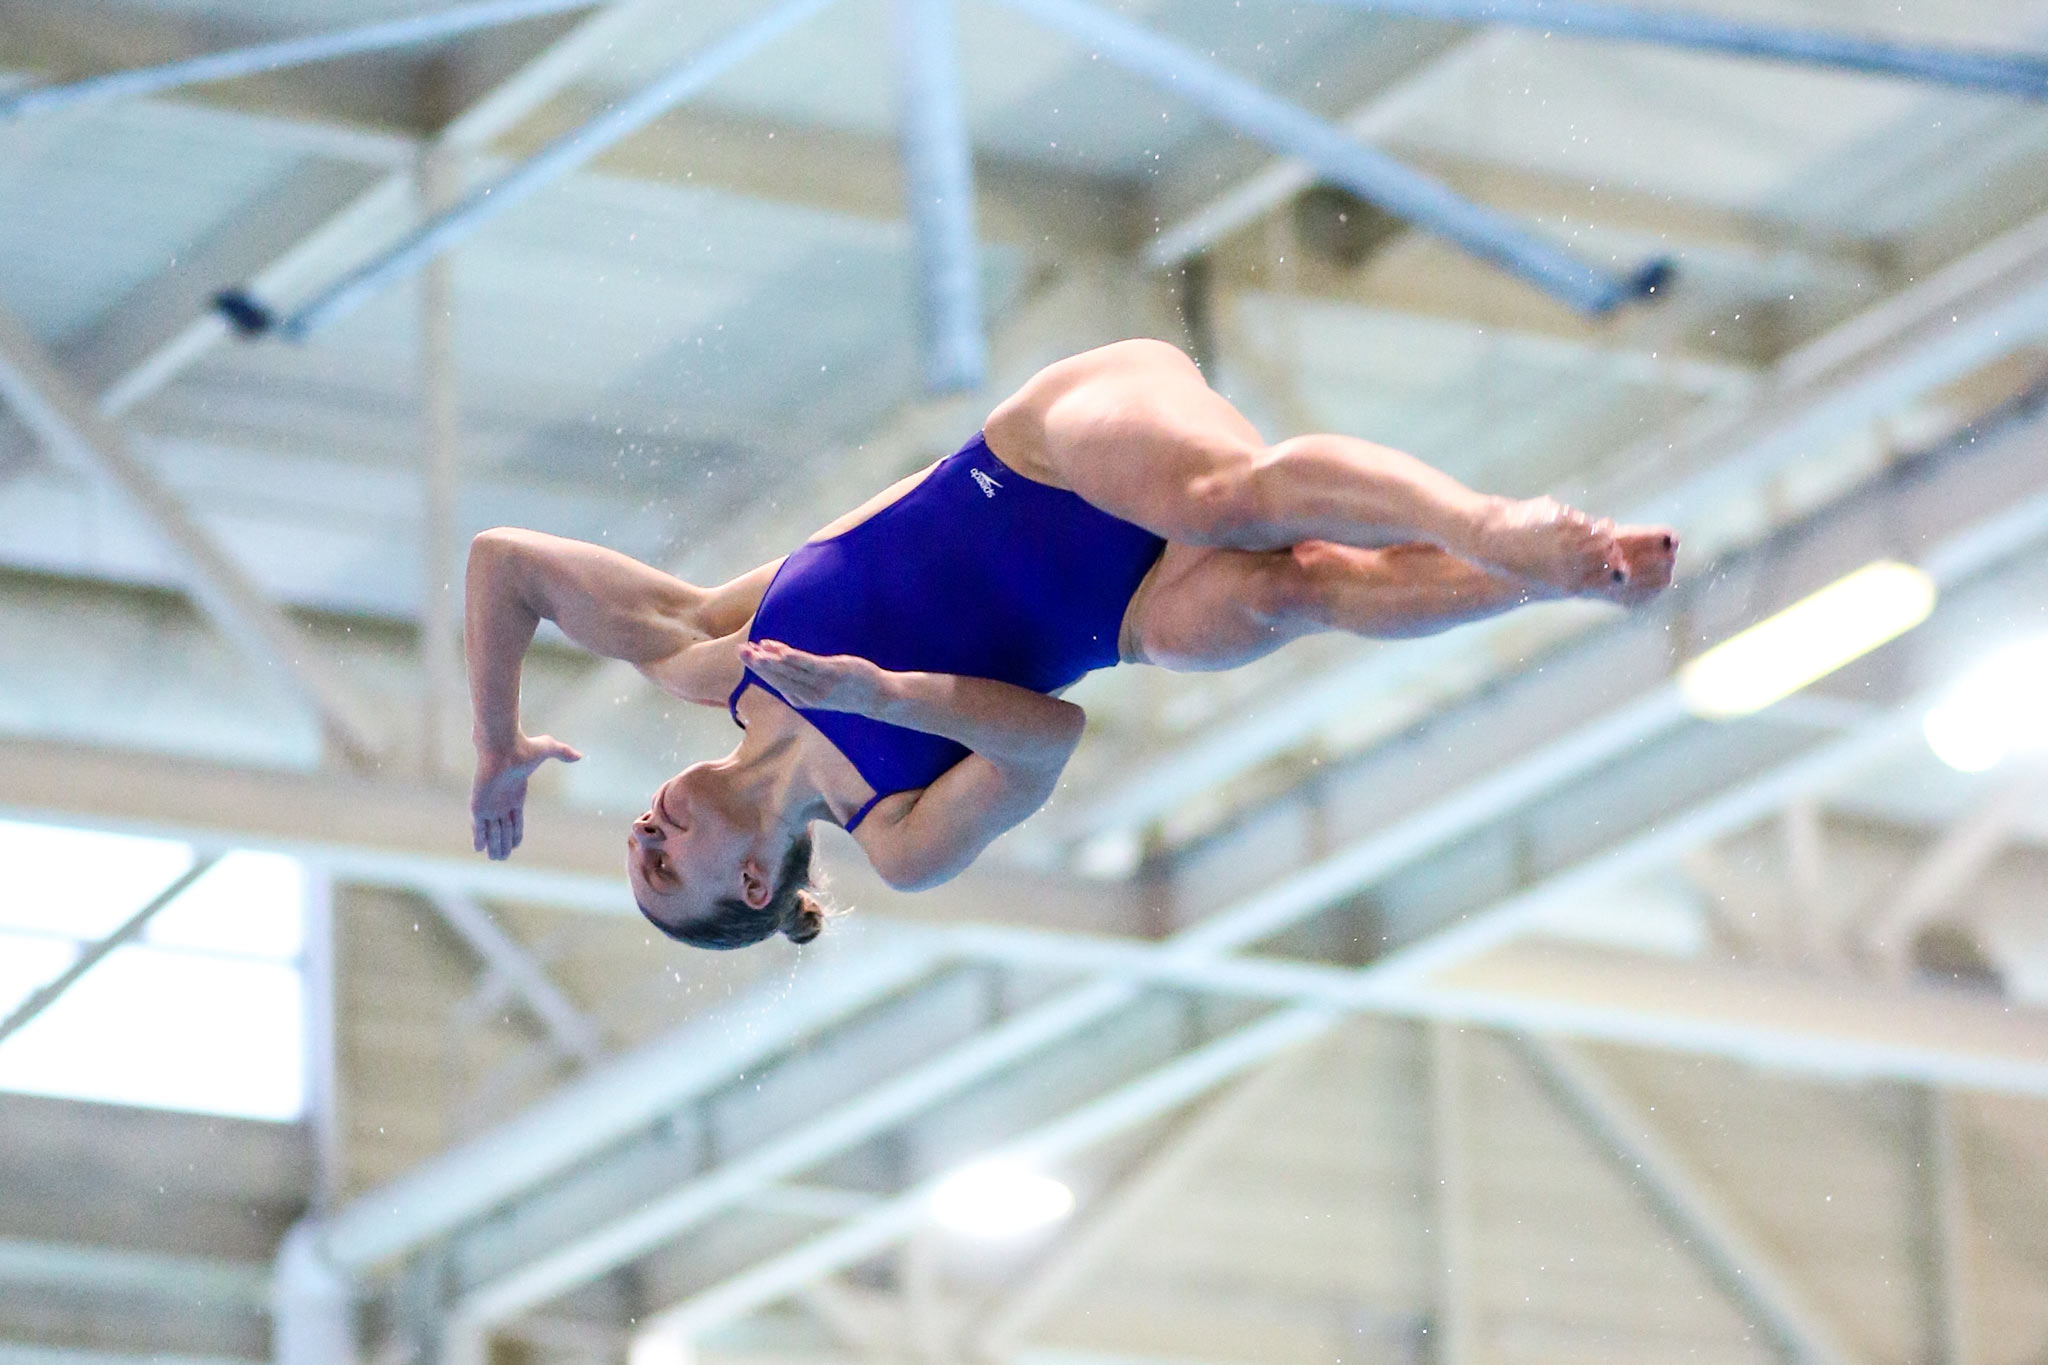 Emma is mid-dive, wearing a blue one-piece swimsuit. She is midair, turning sideways and twisting with her legs straight out and her toes pointed.